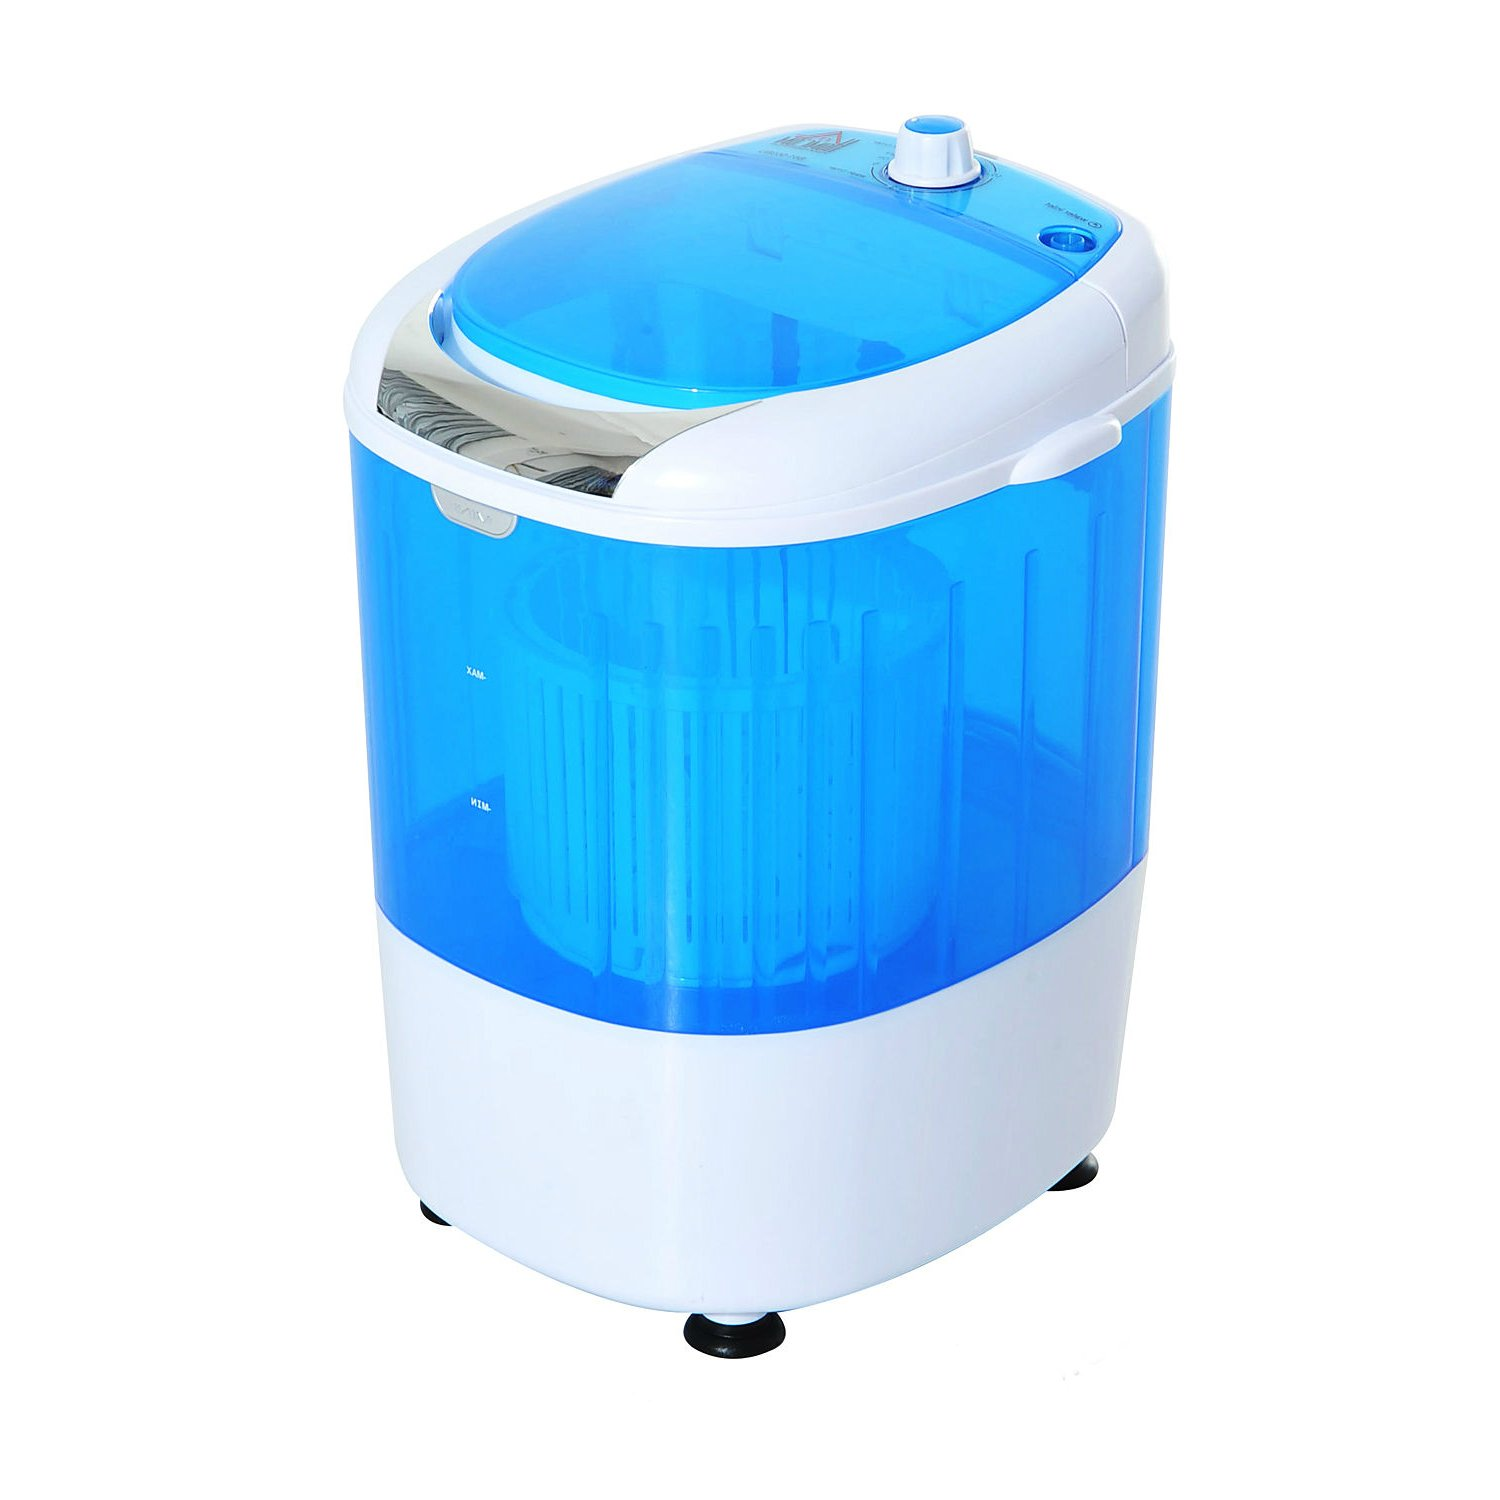 Lightweight Portable Electric Mini Washing Machine w/ Dryer Can Wash Laundry 5.5LB Max | RV Mobile Home College Dorm Washer